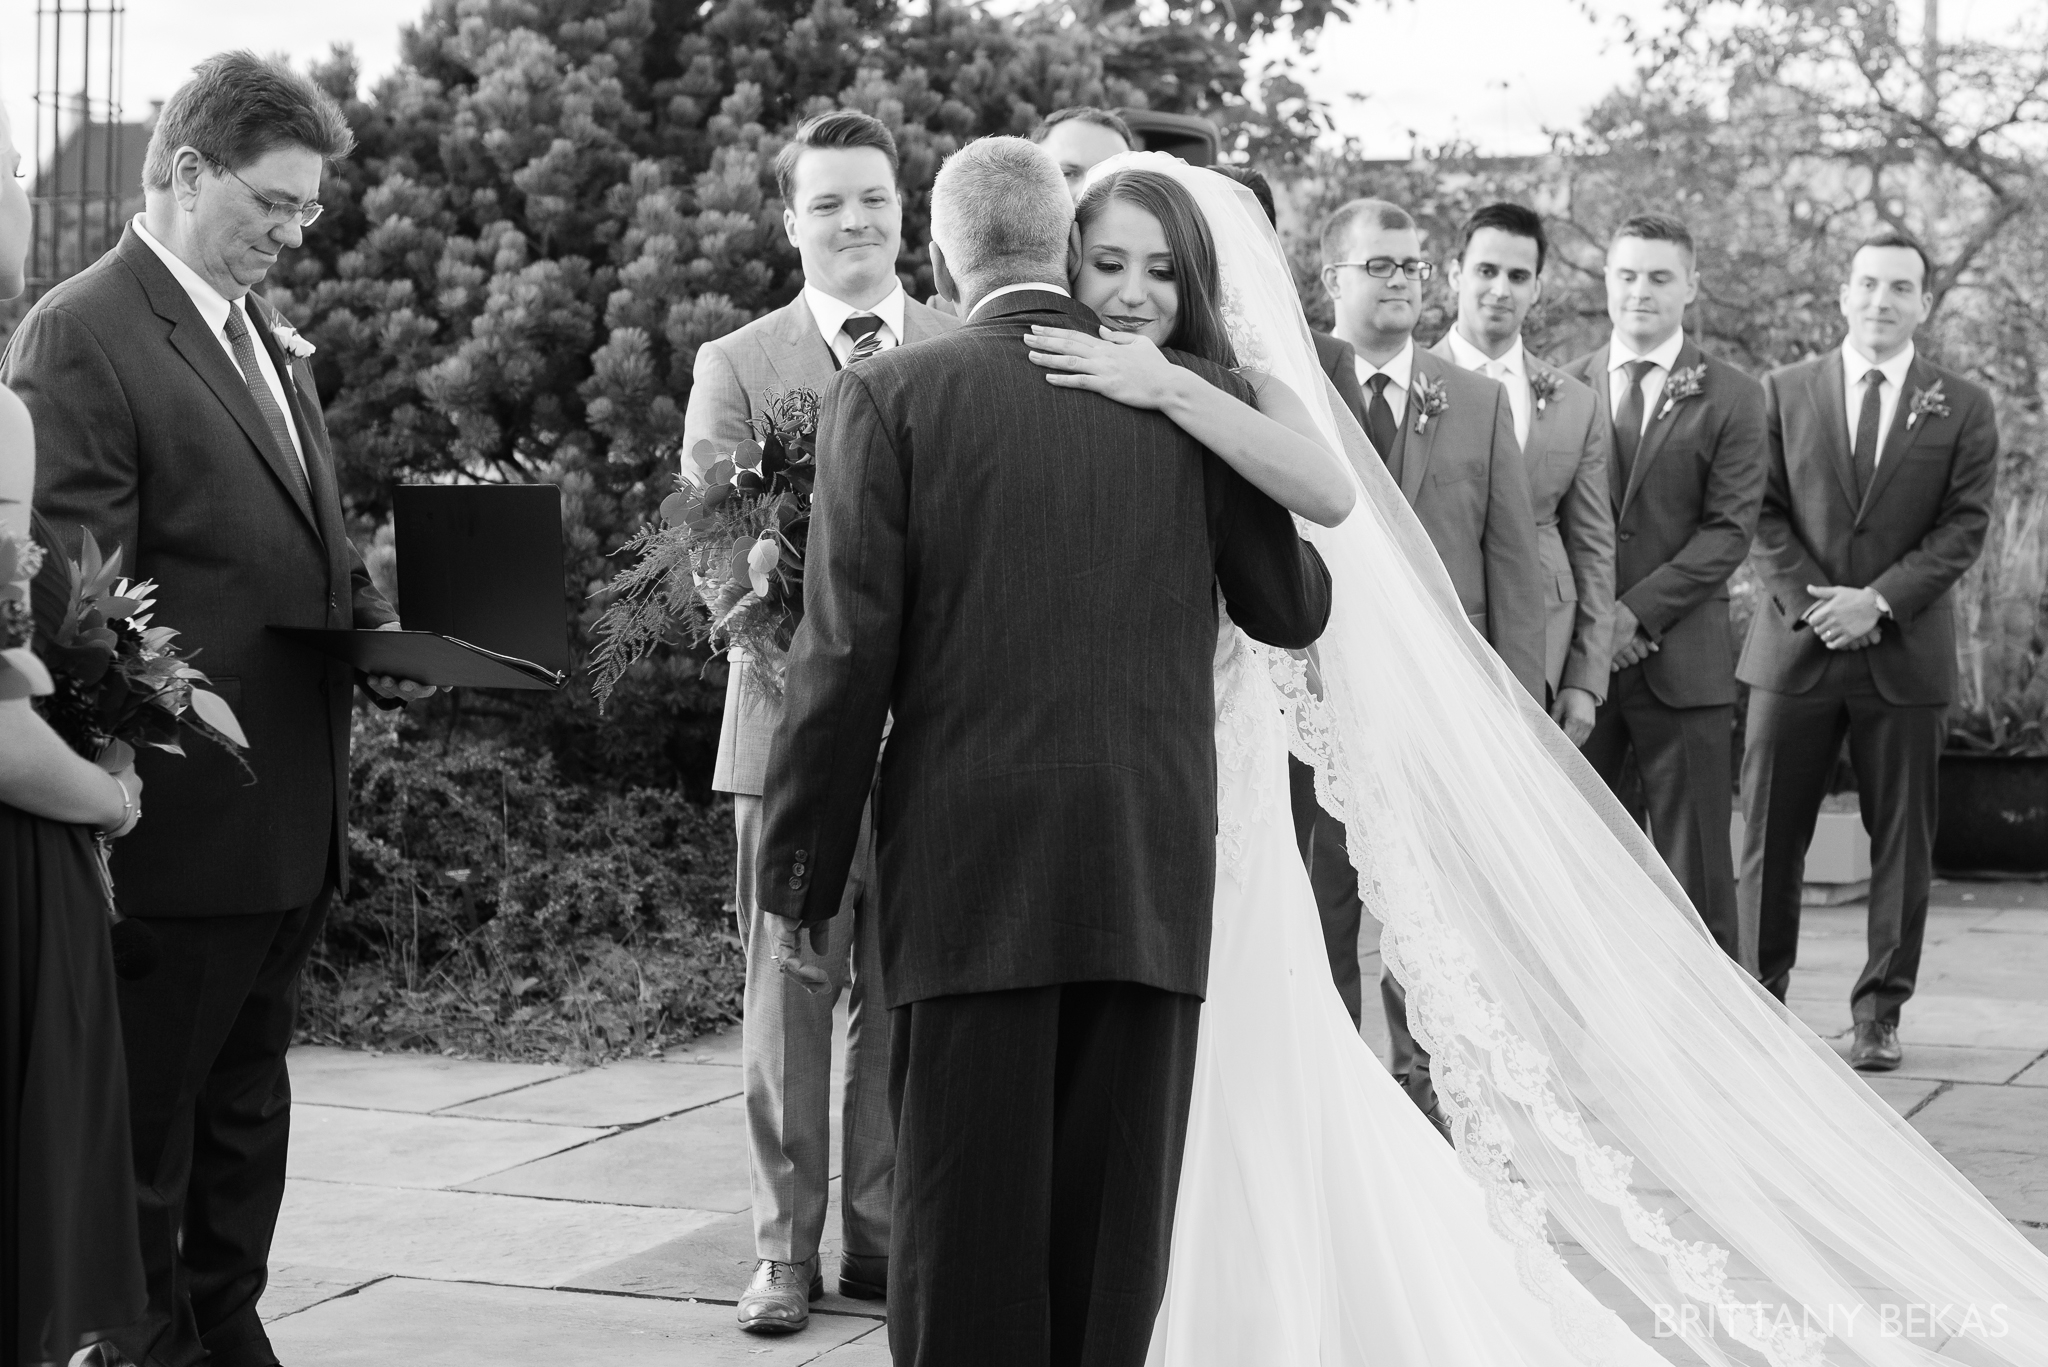 Chicago Wedding Garfield Park Conservatory Wedding Photos - Brittany Bekas Photography_0038